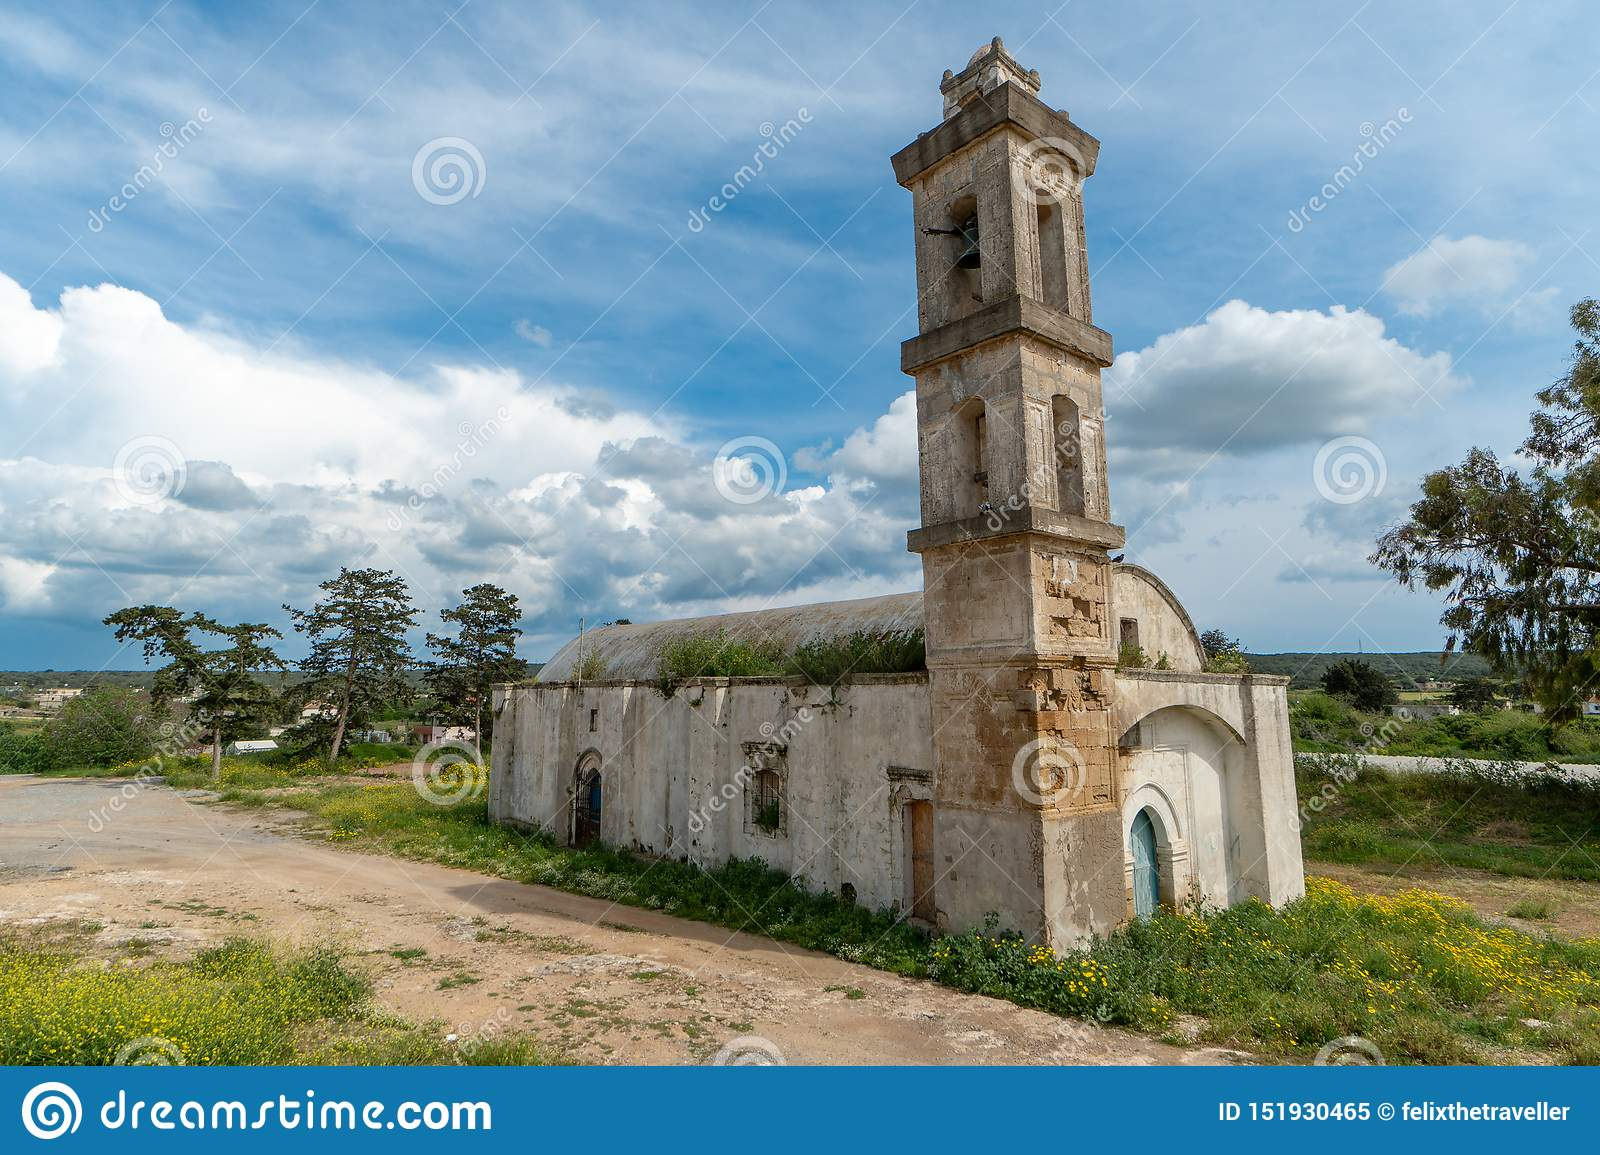 Abandoned church in Northern Cyprus